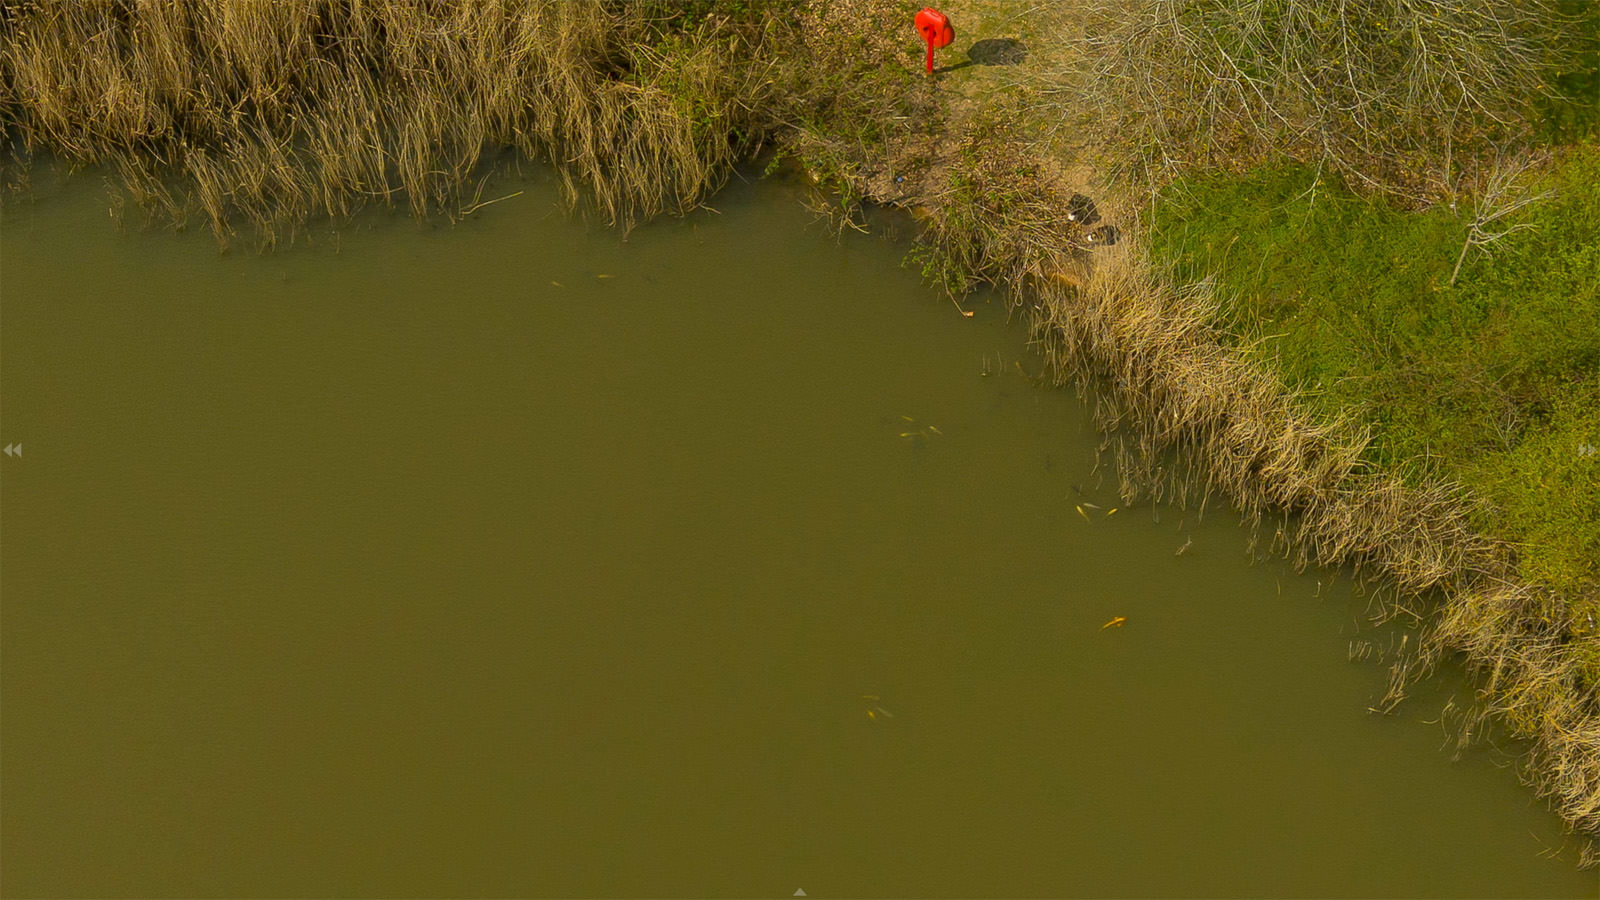 Still taken from the aerial virtual Tour - fish in pond